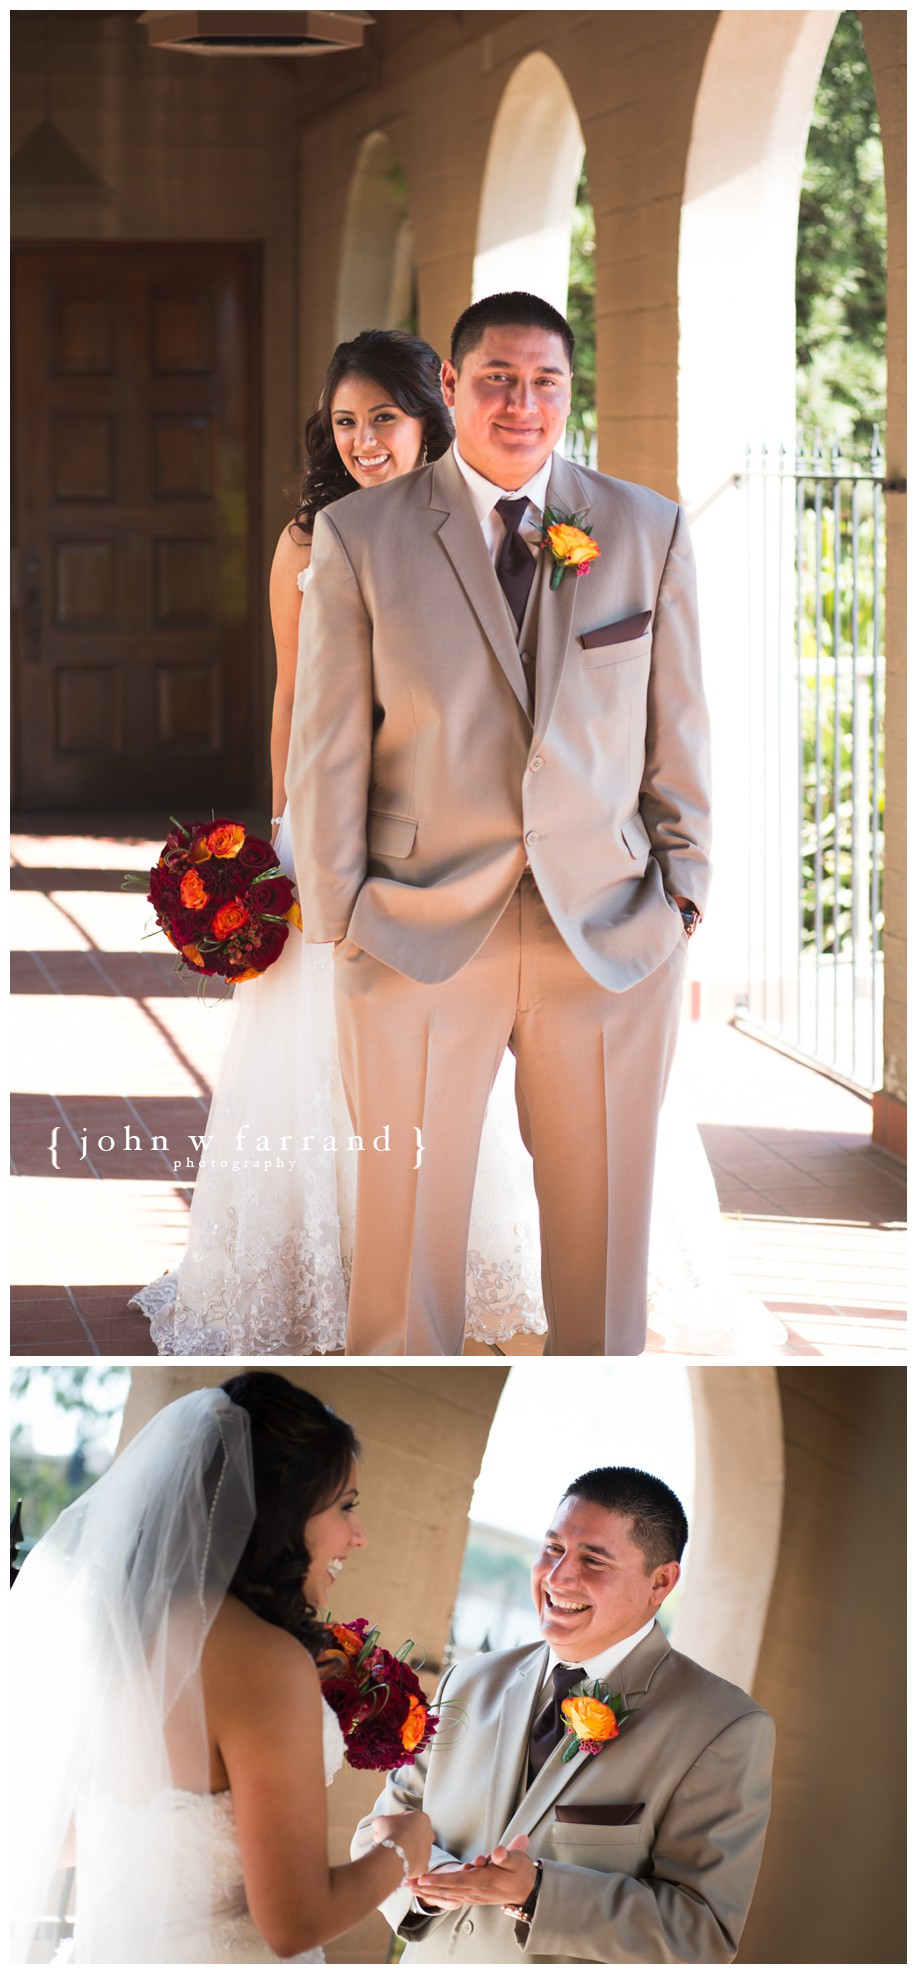 Bakersfield_Wedding_Photography_Hinojosa_008.jpg